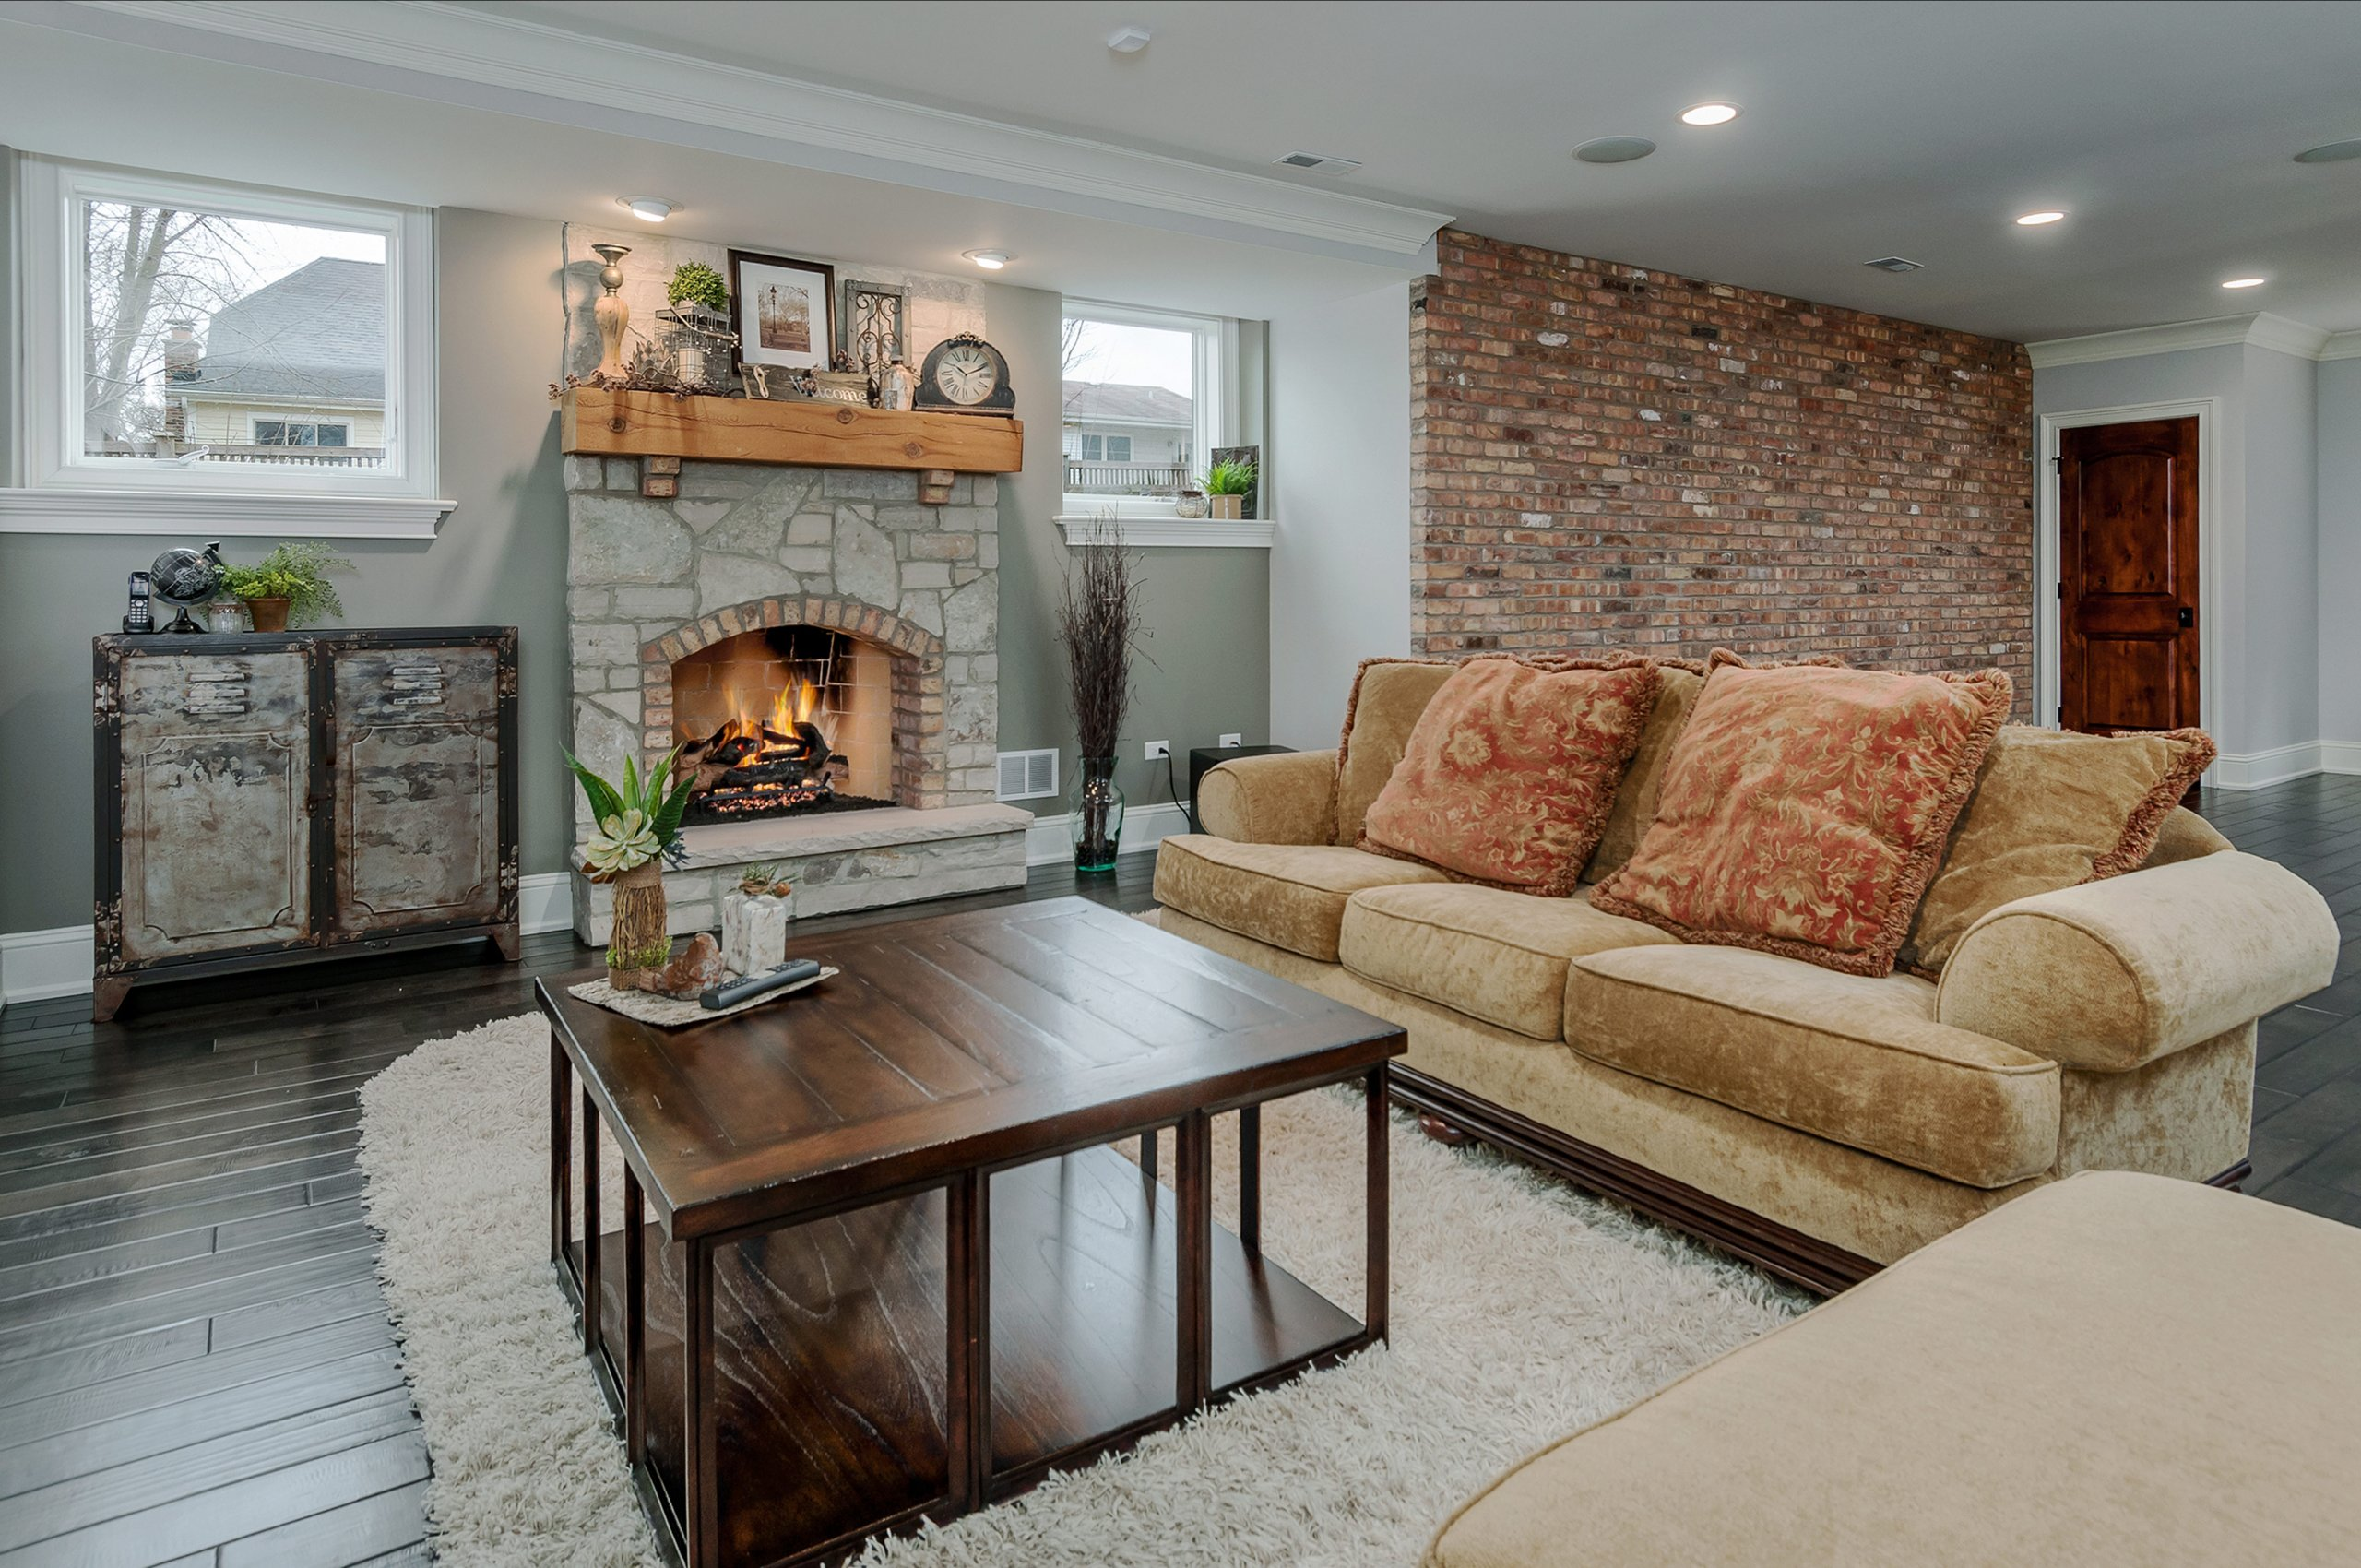 Cozy family room interior photography of upscale home in Naperville, IL.